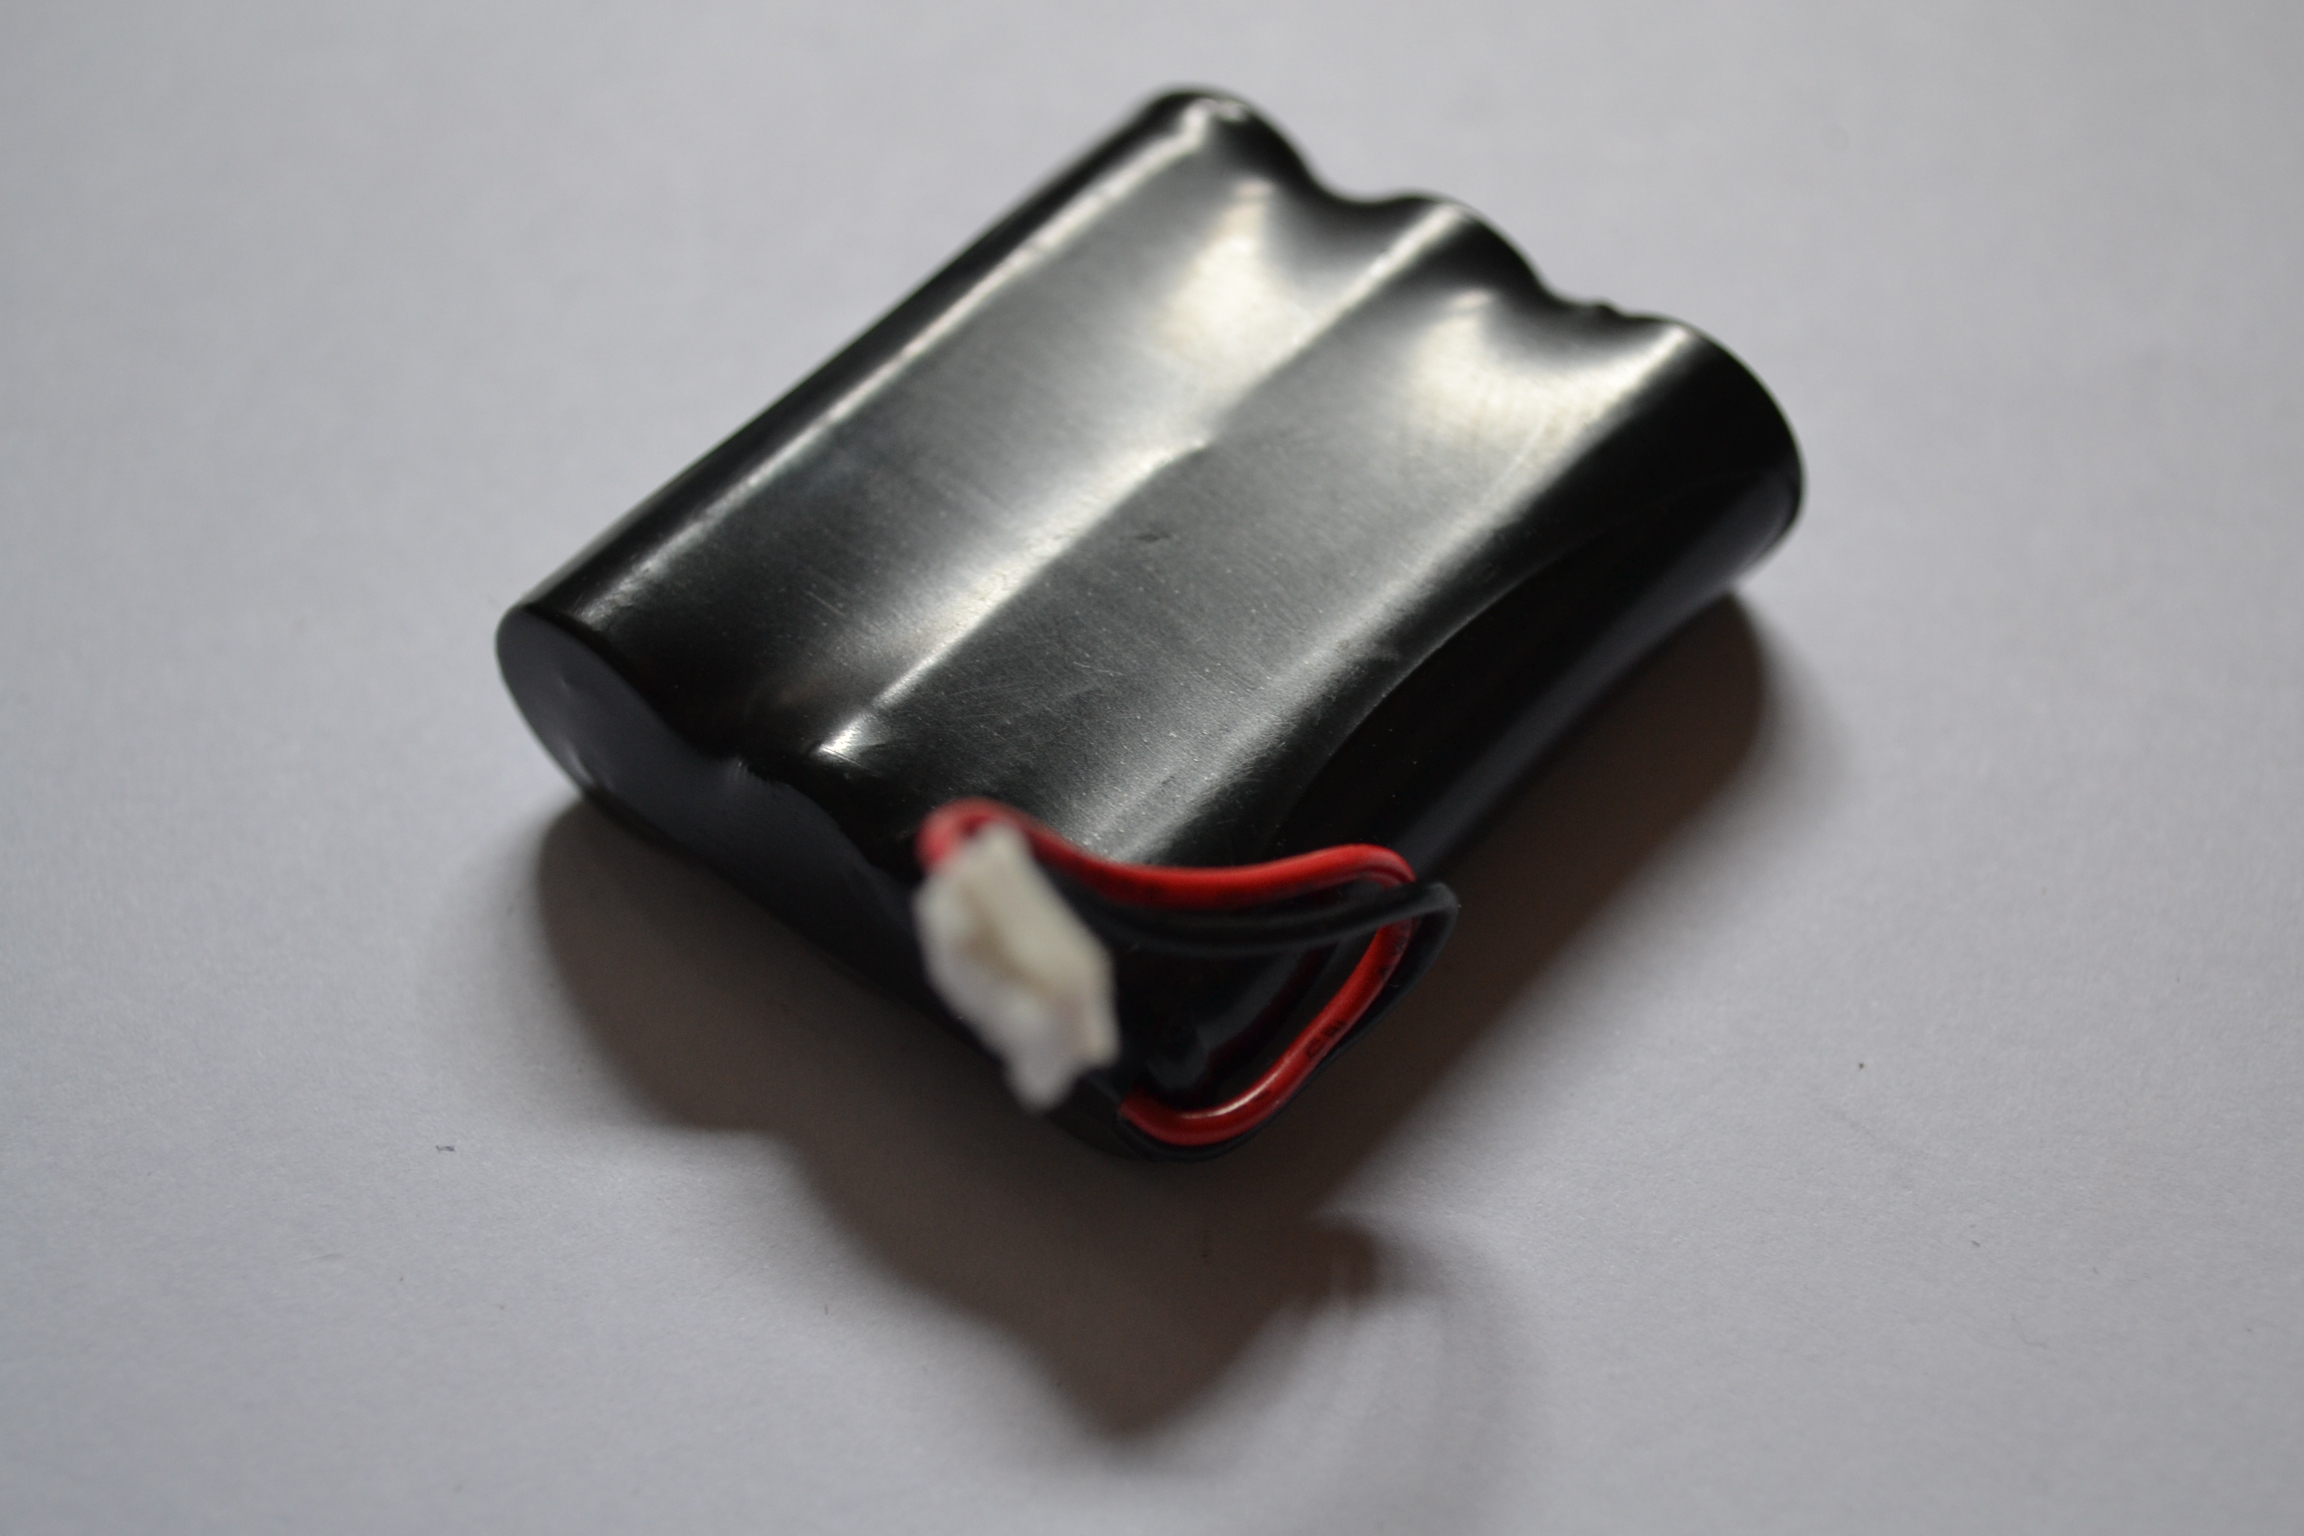 GE 3.6V 1500MAH NiCd Battery For AT&T Phonemate GE And V-Tech Phones